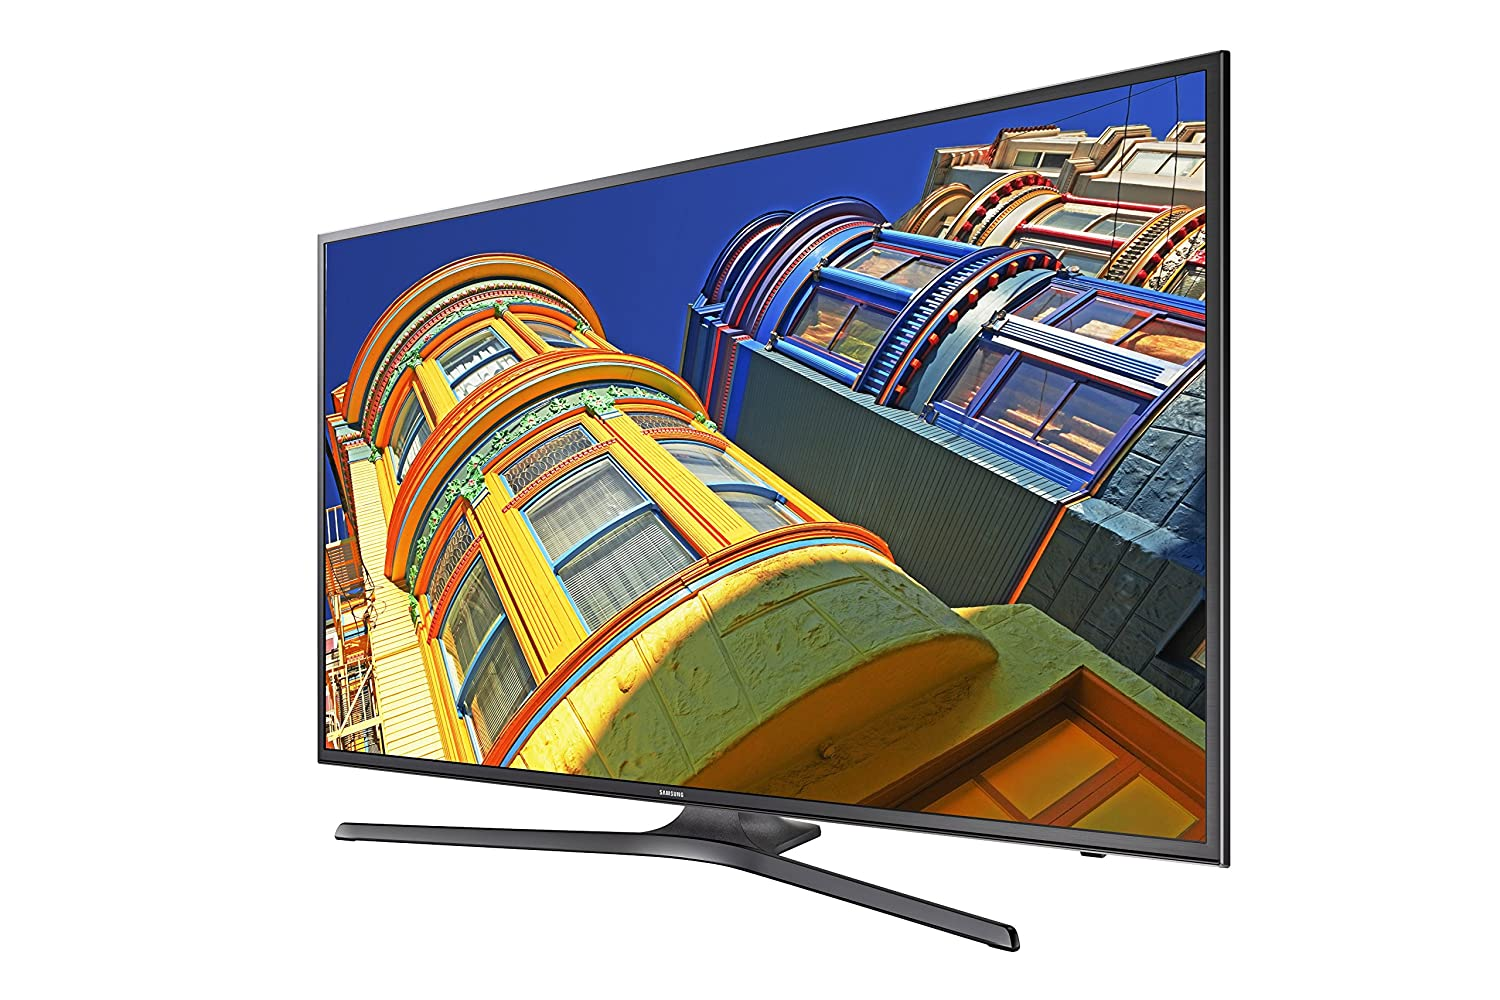 Amazon.com: Samsung UN55KU6290 55-Inch 4K Ultra HD Smart LED TV (2016  Model): Electronics